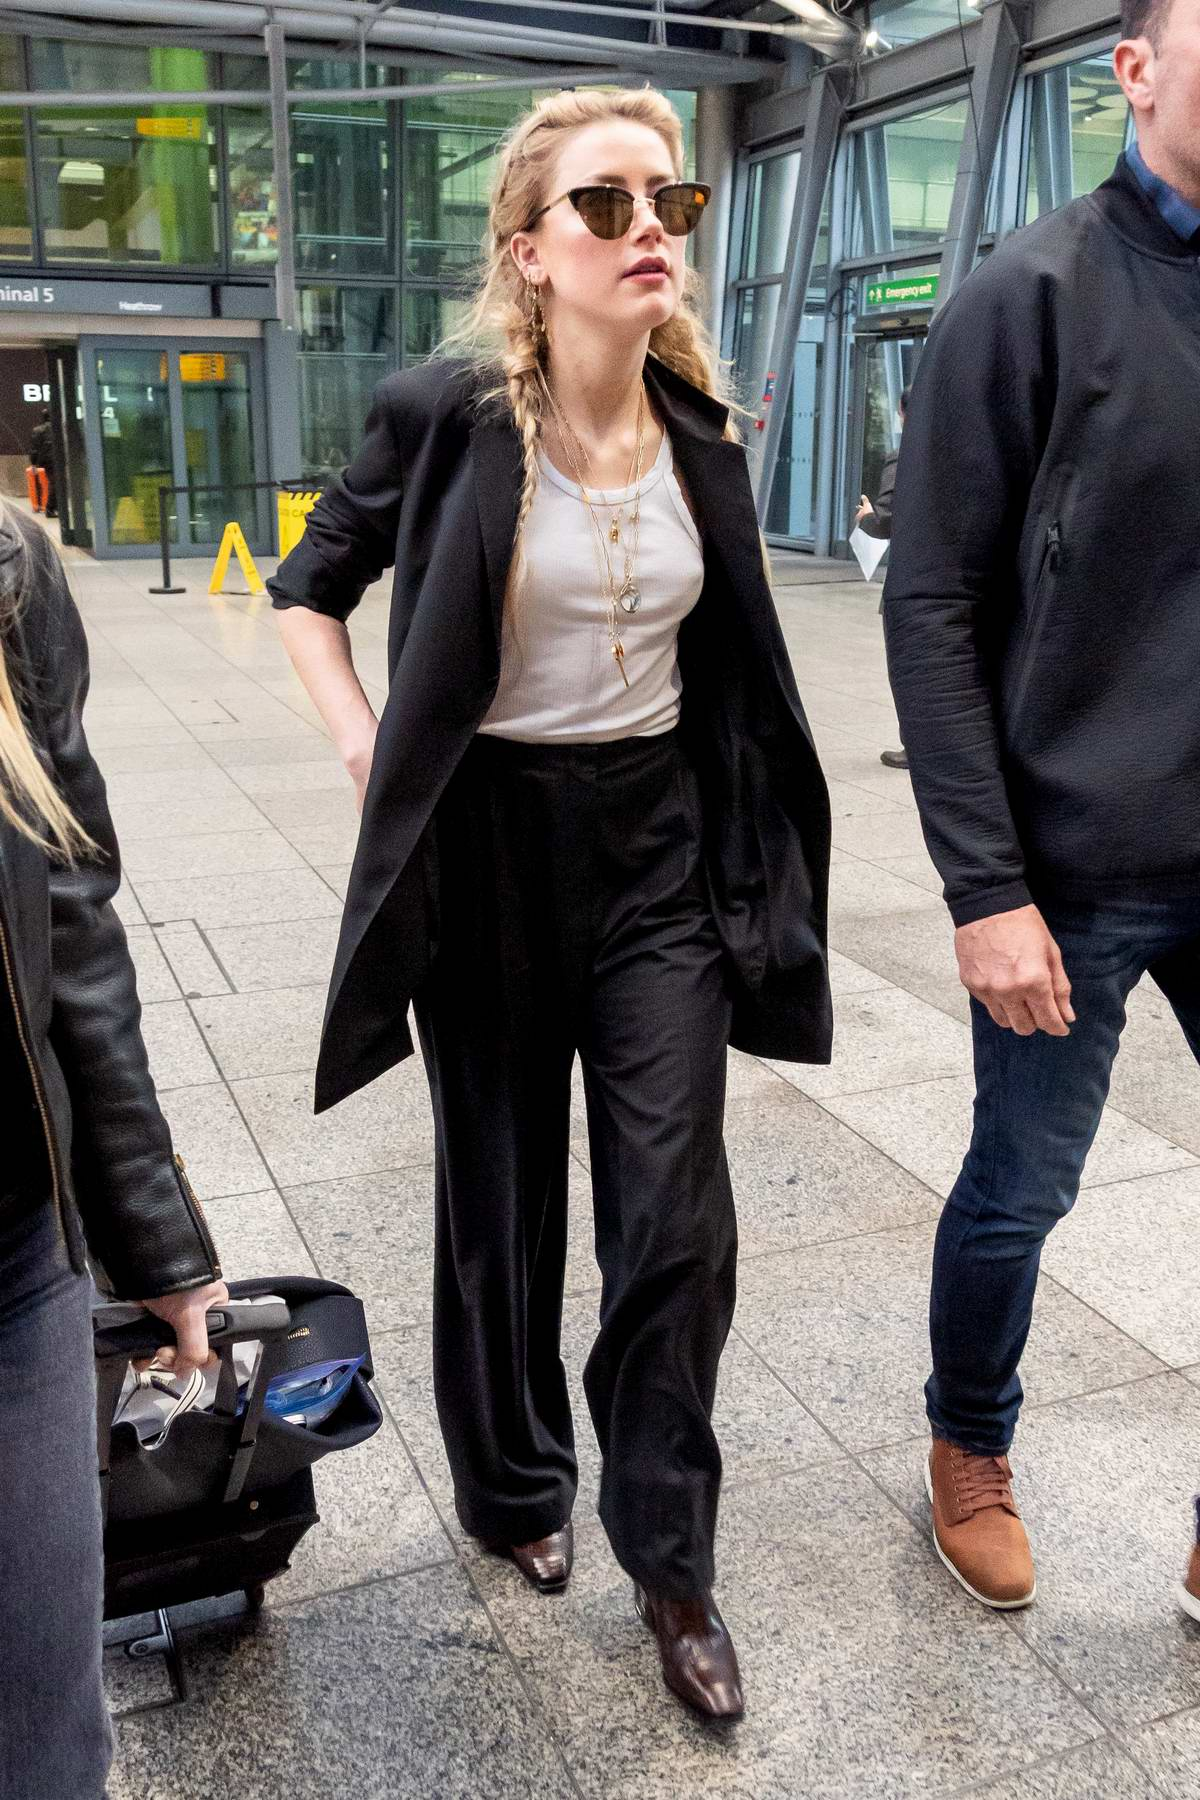 Amber Heard arrives at Heathrow airport to attend the premiere of her new movie 'Aquaman' in London, UK